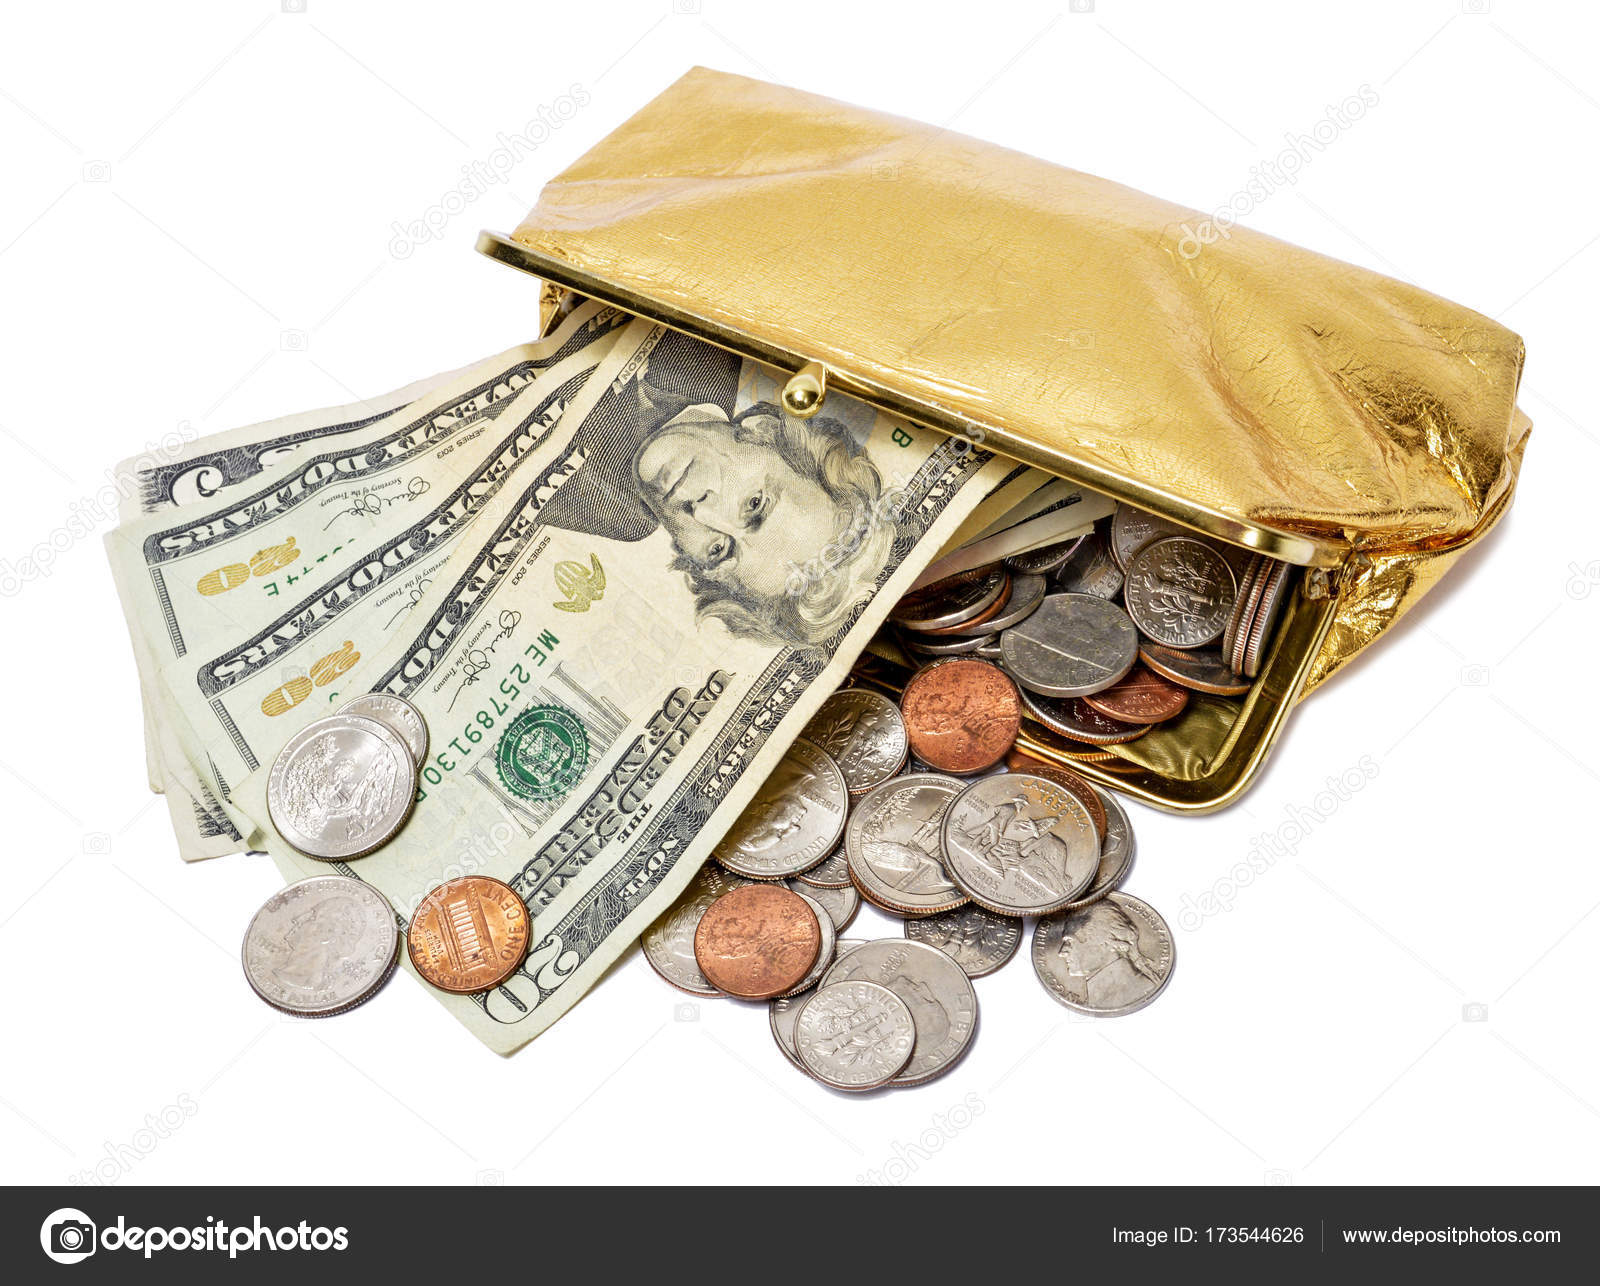 Pictures Show Me Gold Coins Gold Coin Purse With Cash And Coins Stock Photo Whitestar1955 173544626